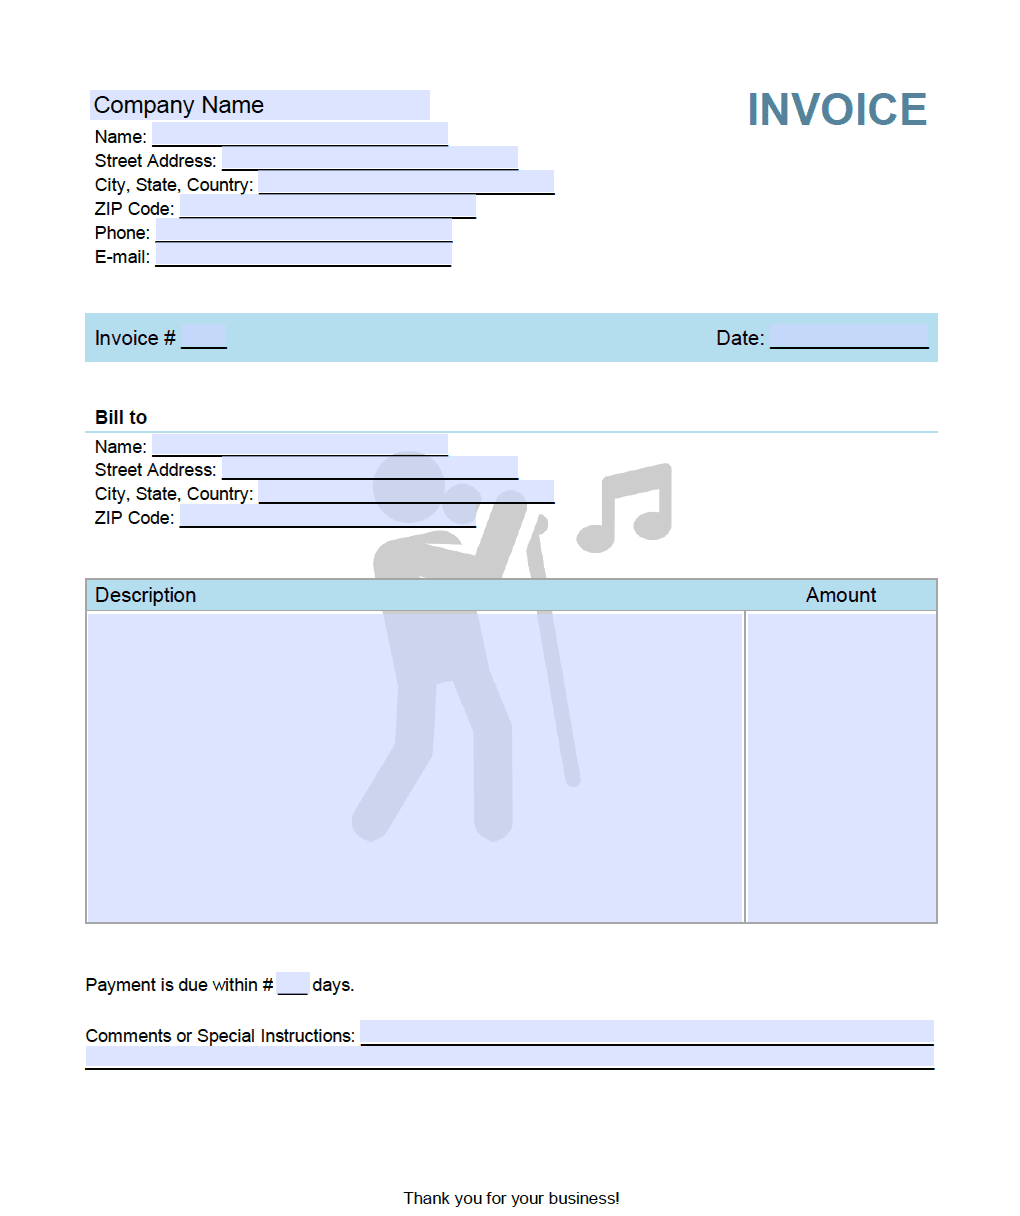 music singer invoice template. Black Bedroom Furniture Sets. Home Design Ideas